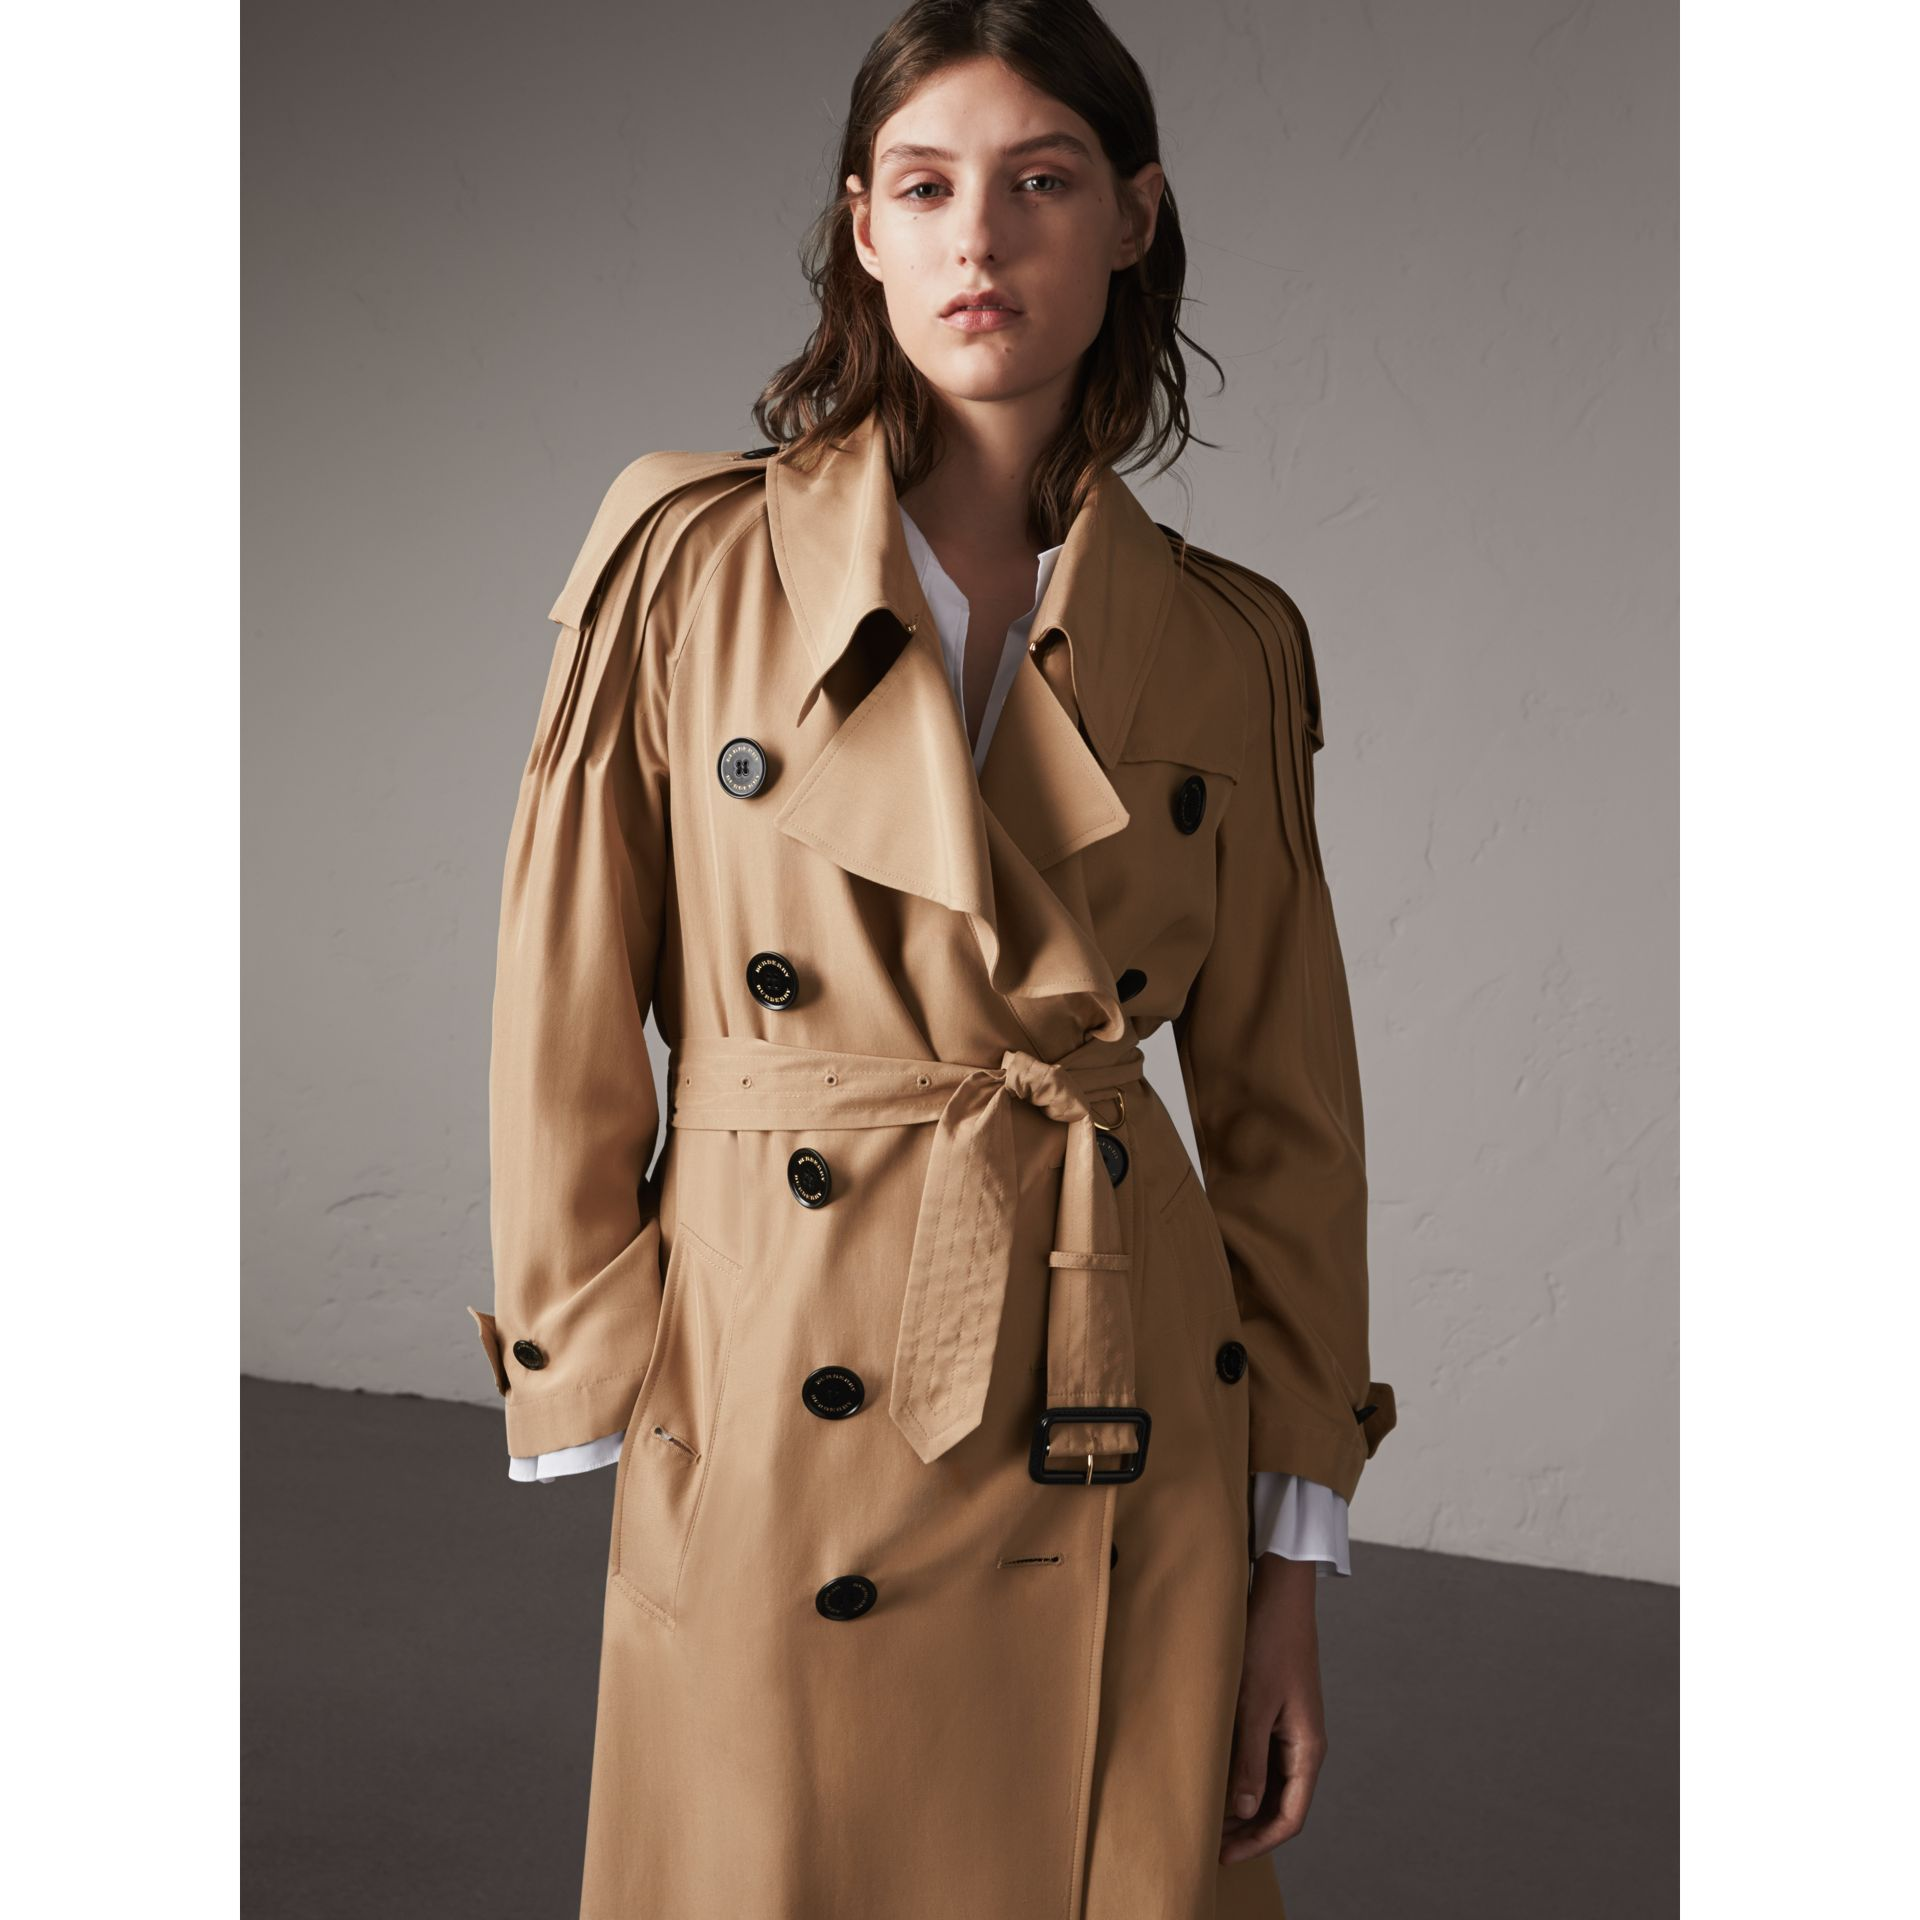 Ruffle Detail Silk Trench Coat in Honey - Women | Burberry - gallery image 6